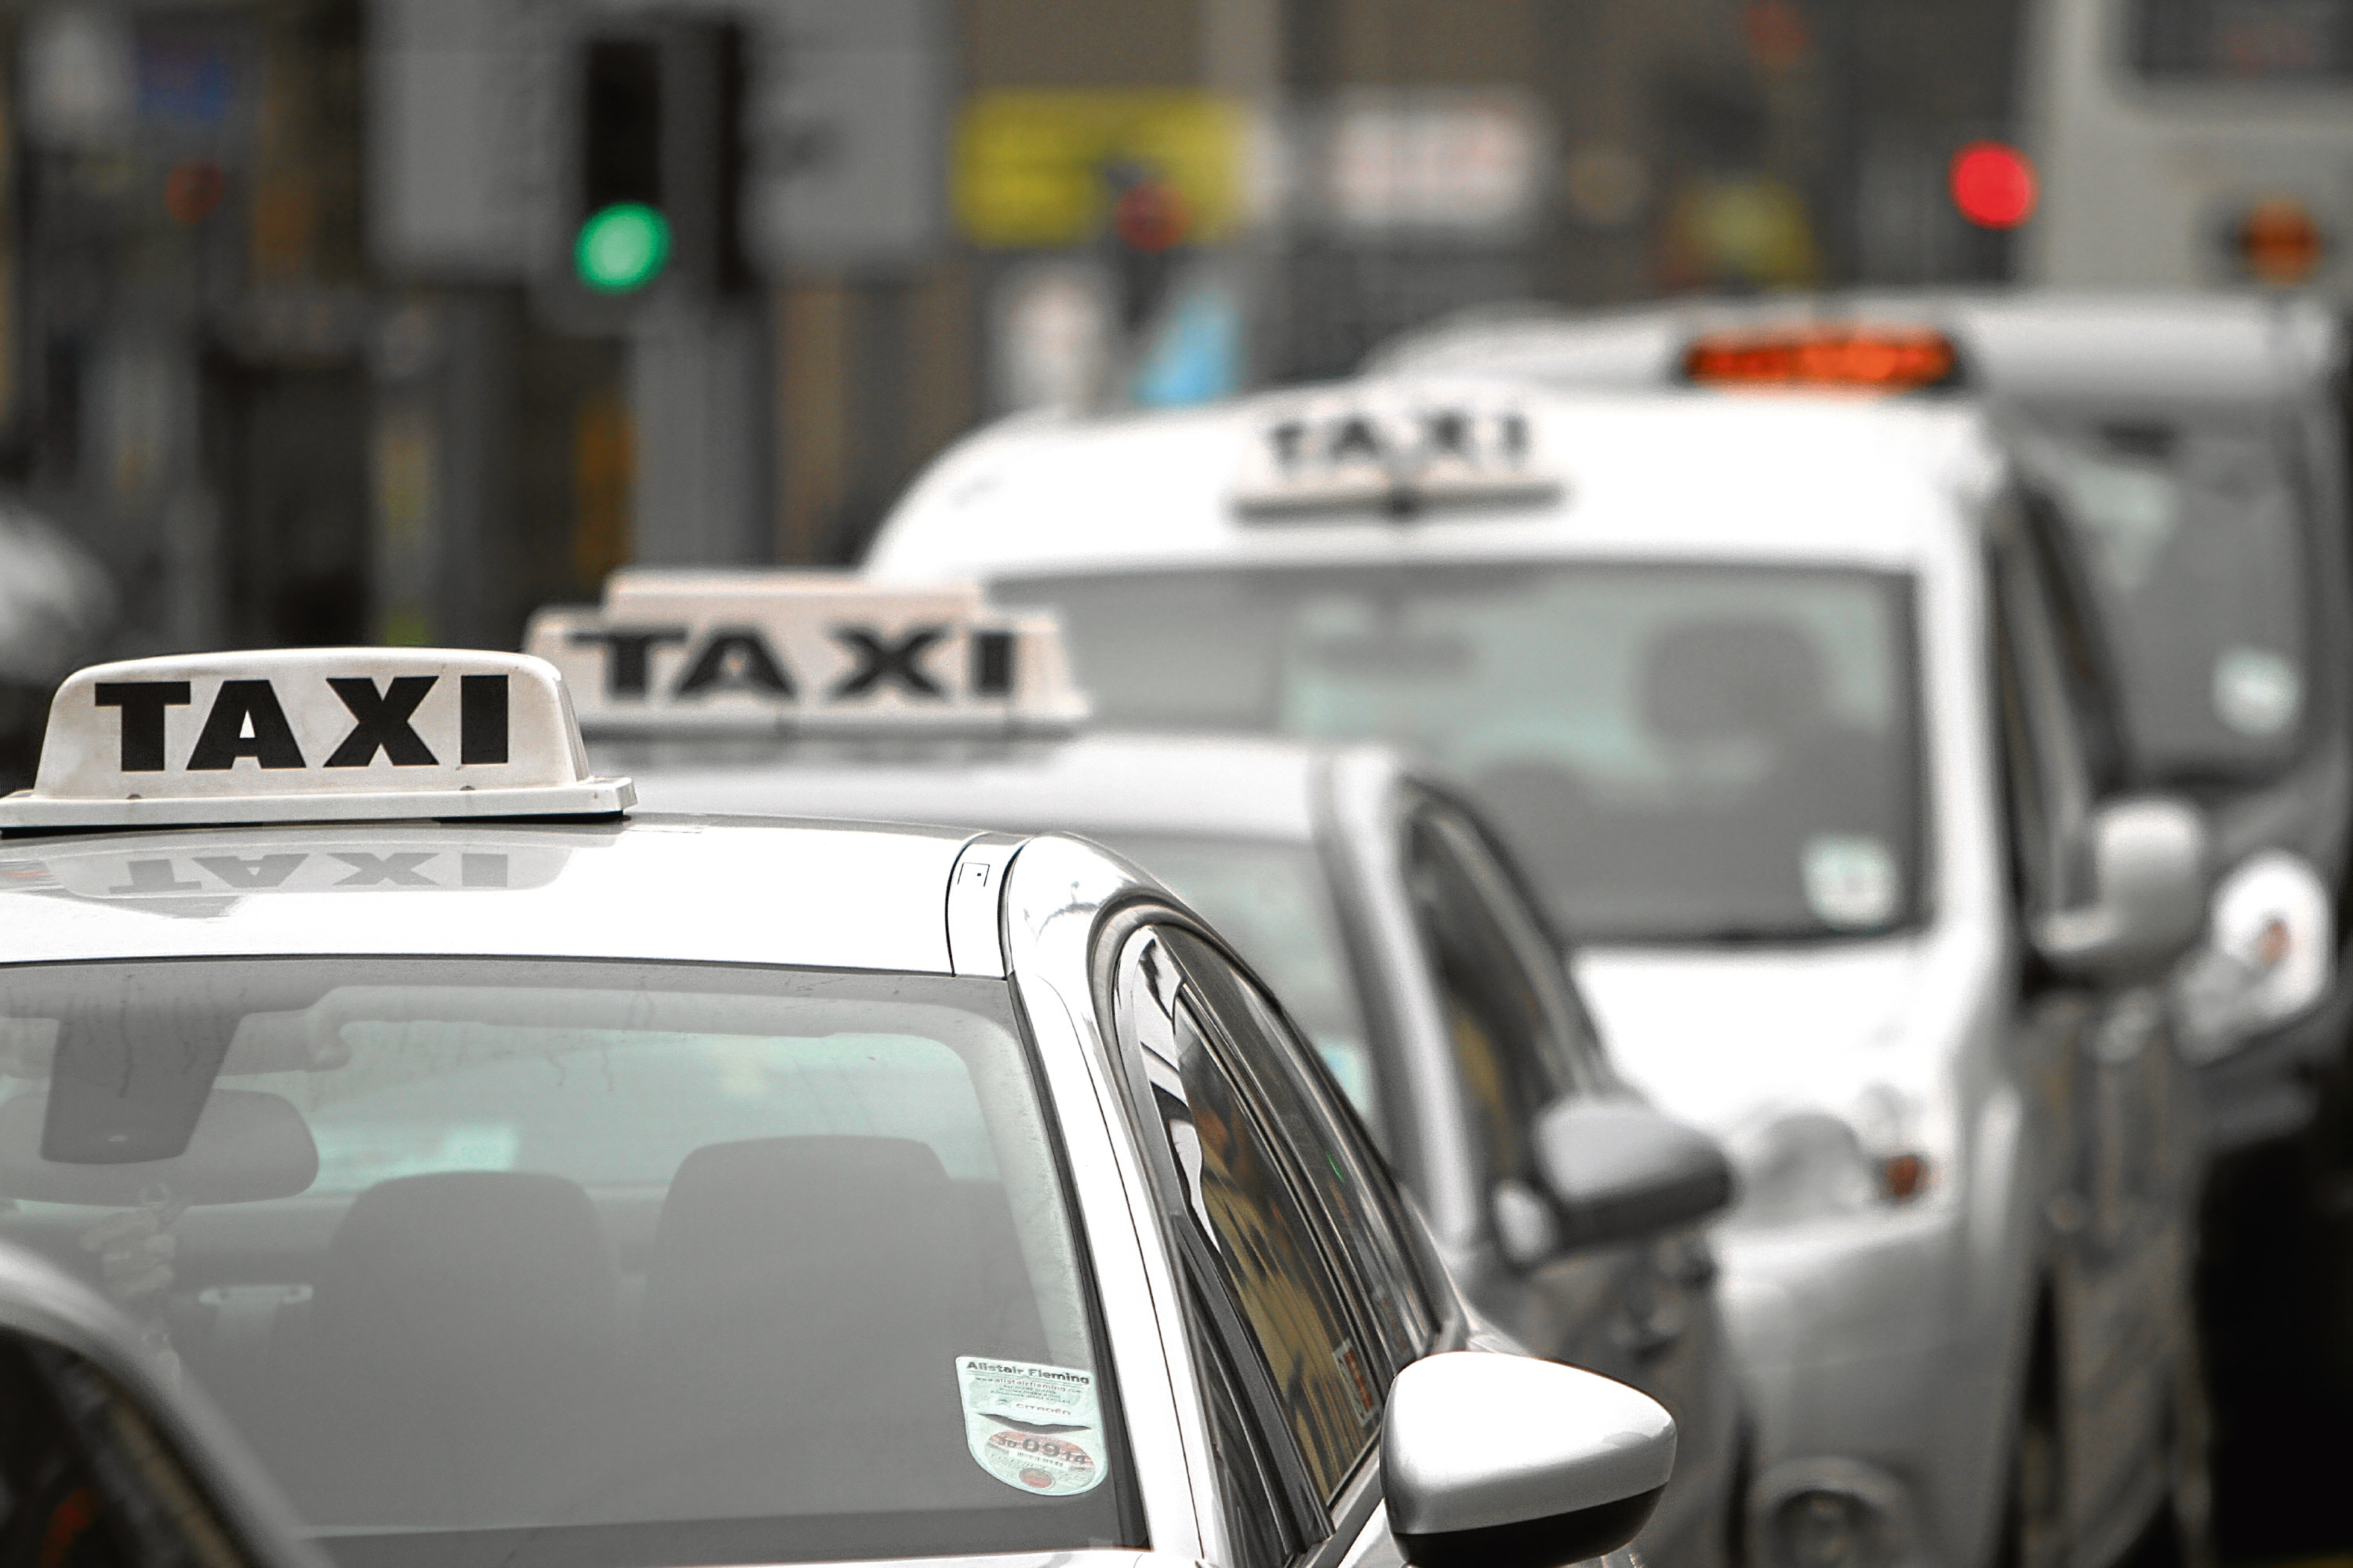 The city's Taxi Liaison Group said that taxi fares shouldn't be increased.